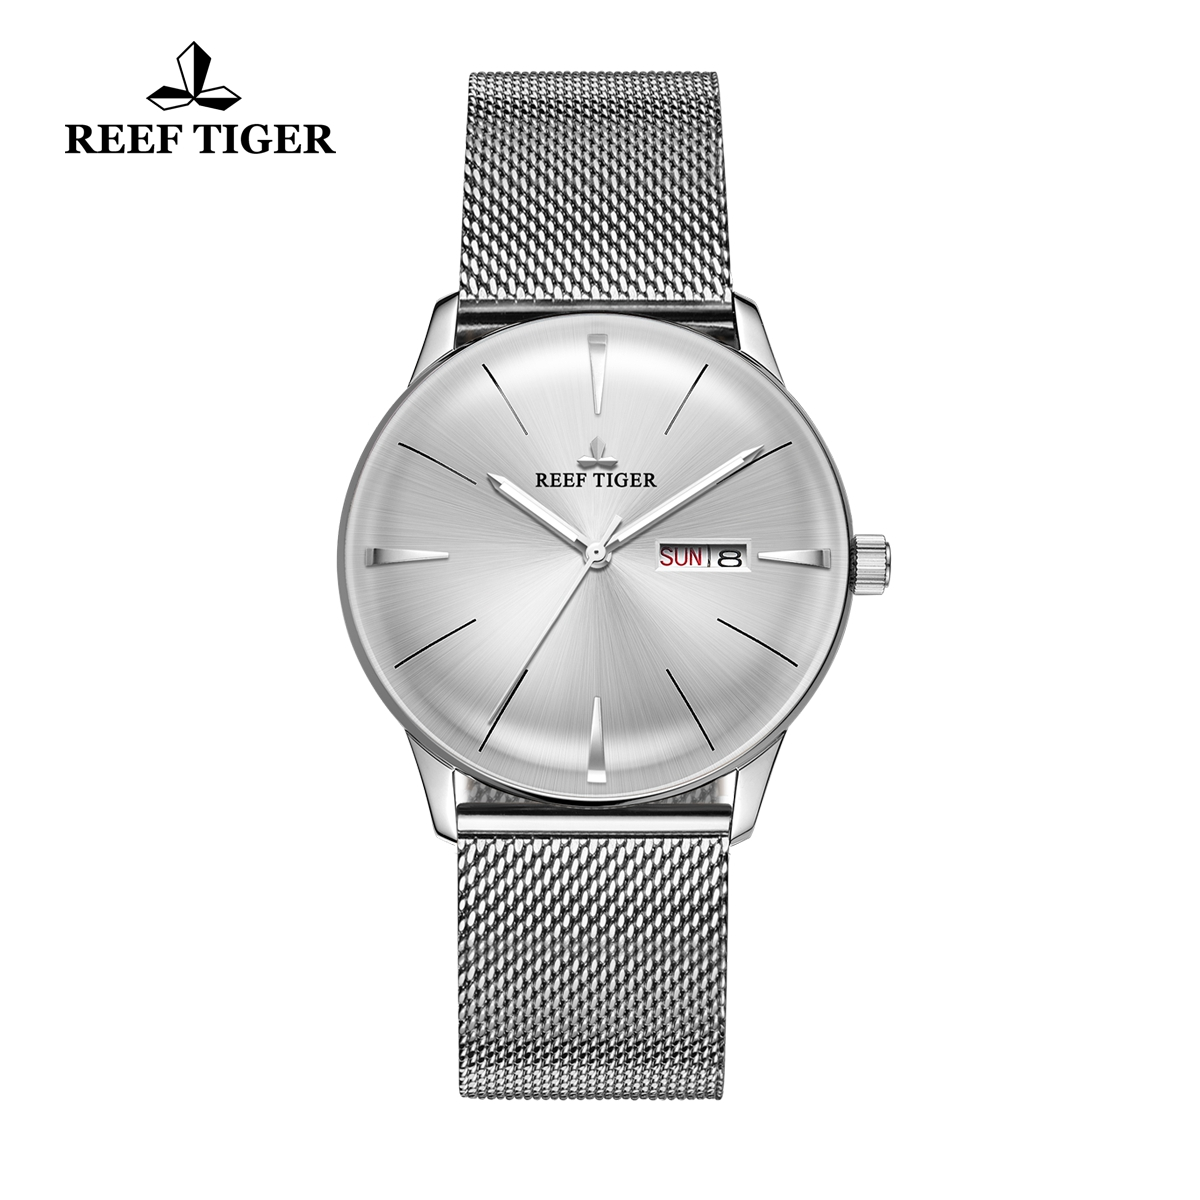 Reef Tiger Classic Heritor Fashion Mens Automatic Watch White Dial Steel Watches RGA8238-YWY